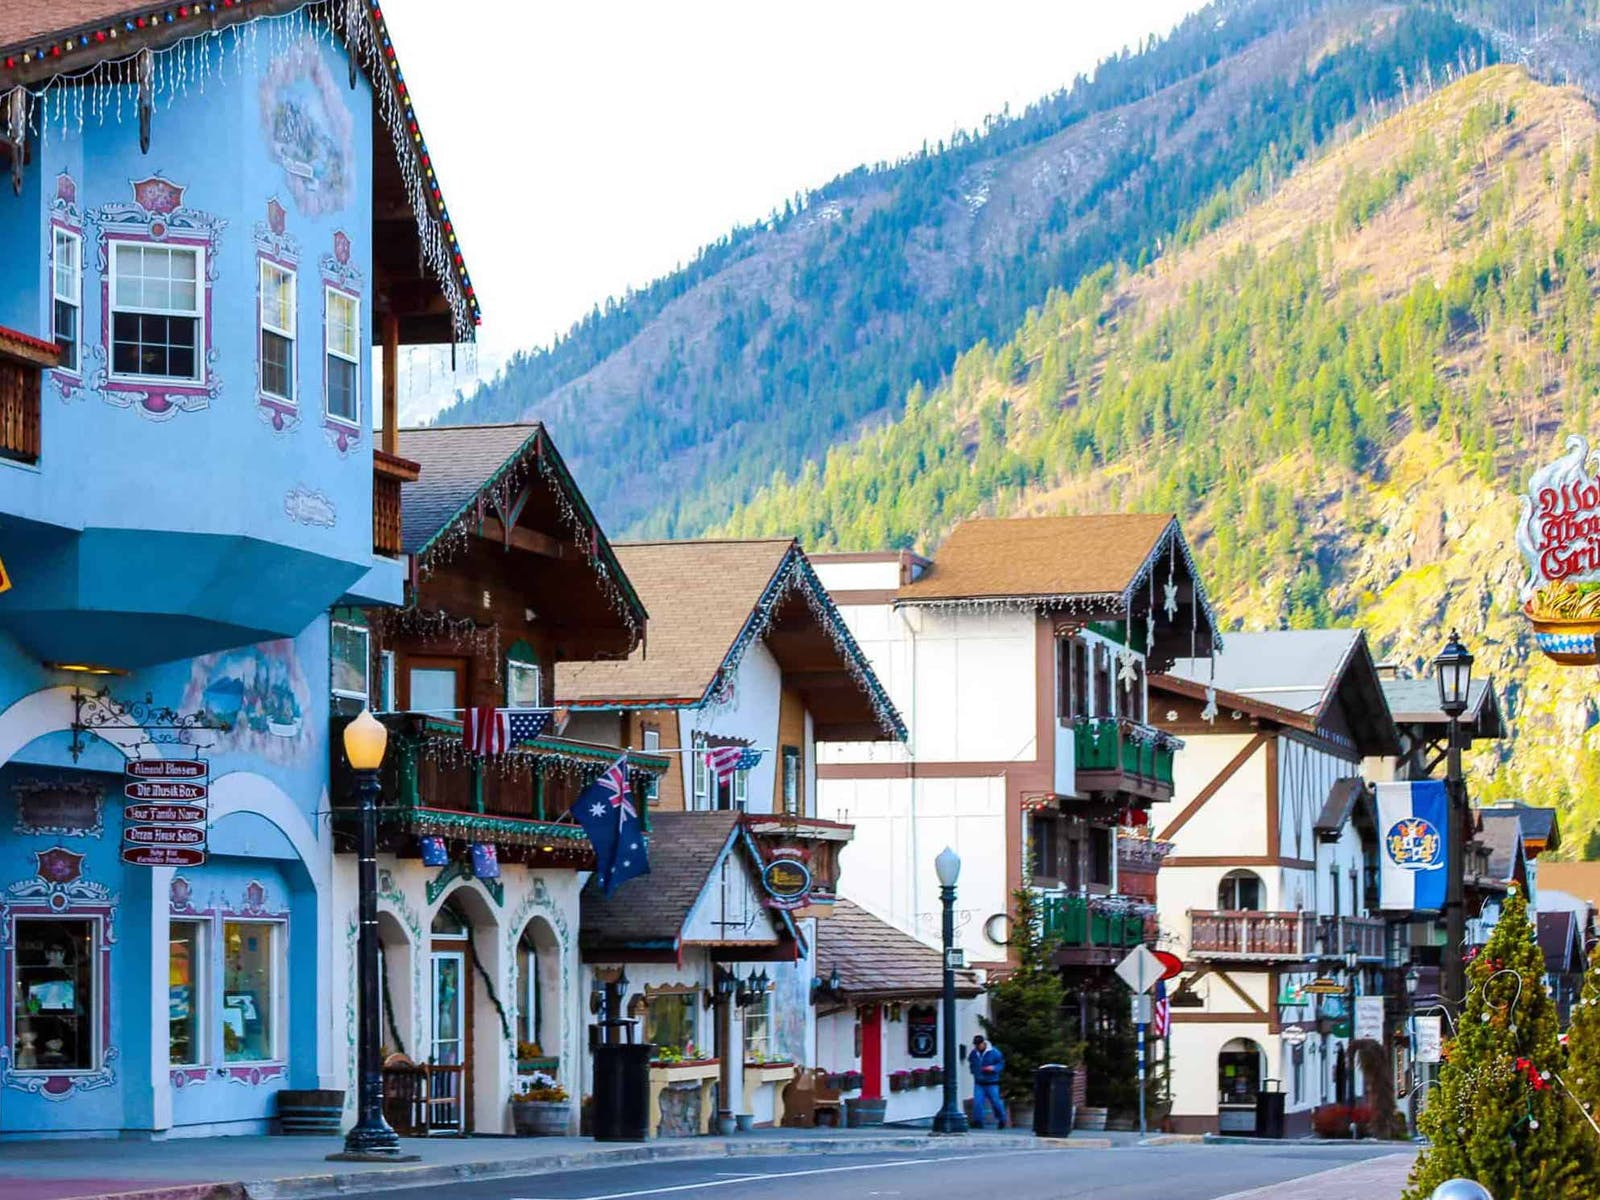 Bavarian-style buildings in Leavenworth, WA